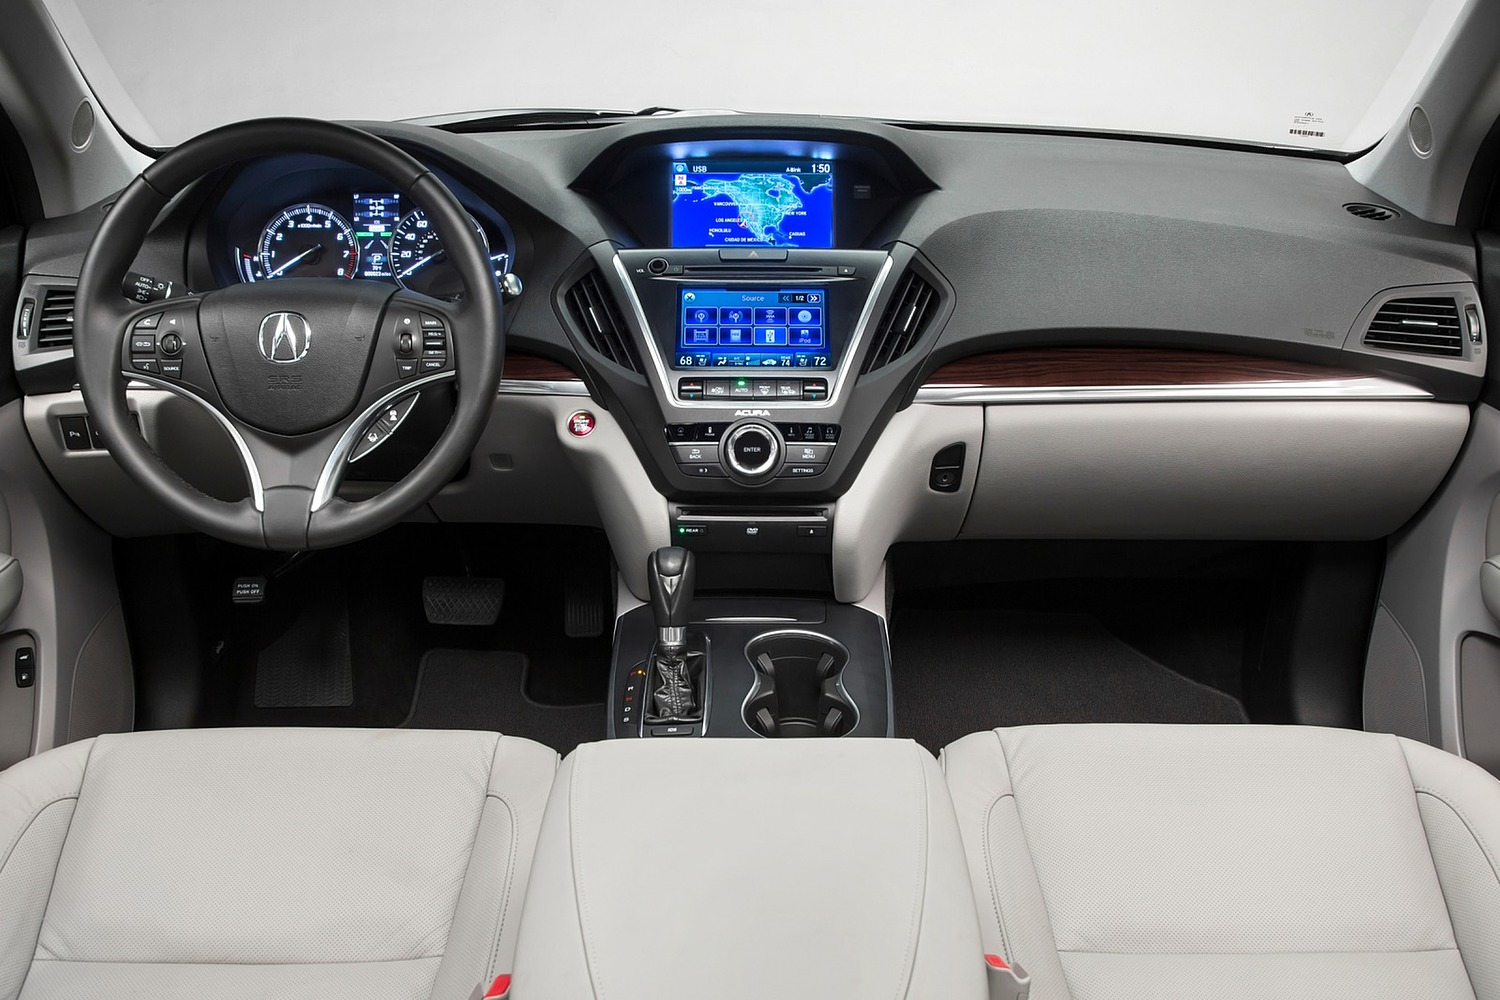 2016 Acura MDX SH-AWD w/Technology, Entertainment and AcuraWatch Plus Packages 4dr SUV Dashboard Shown